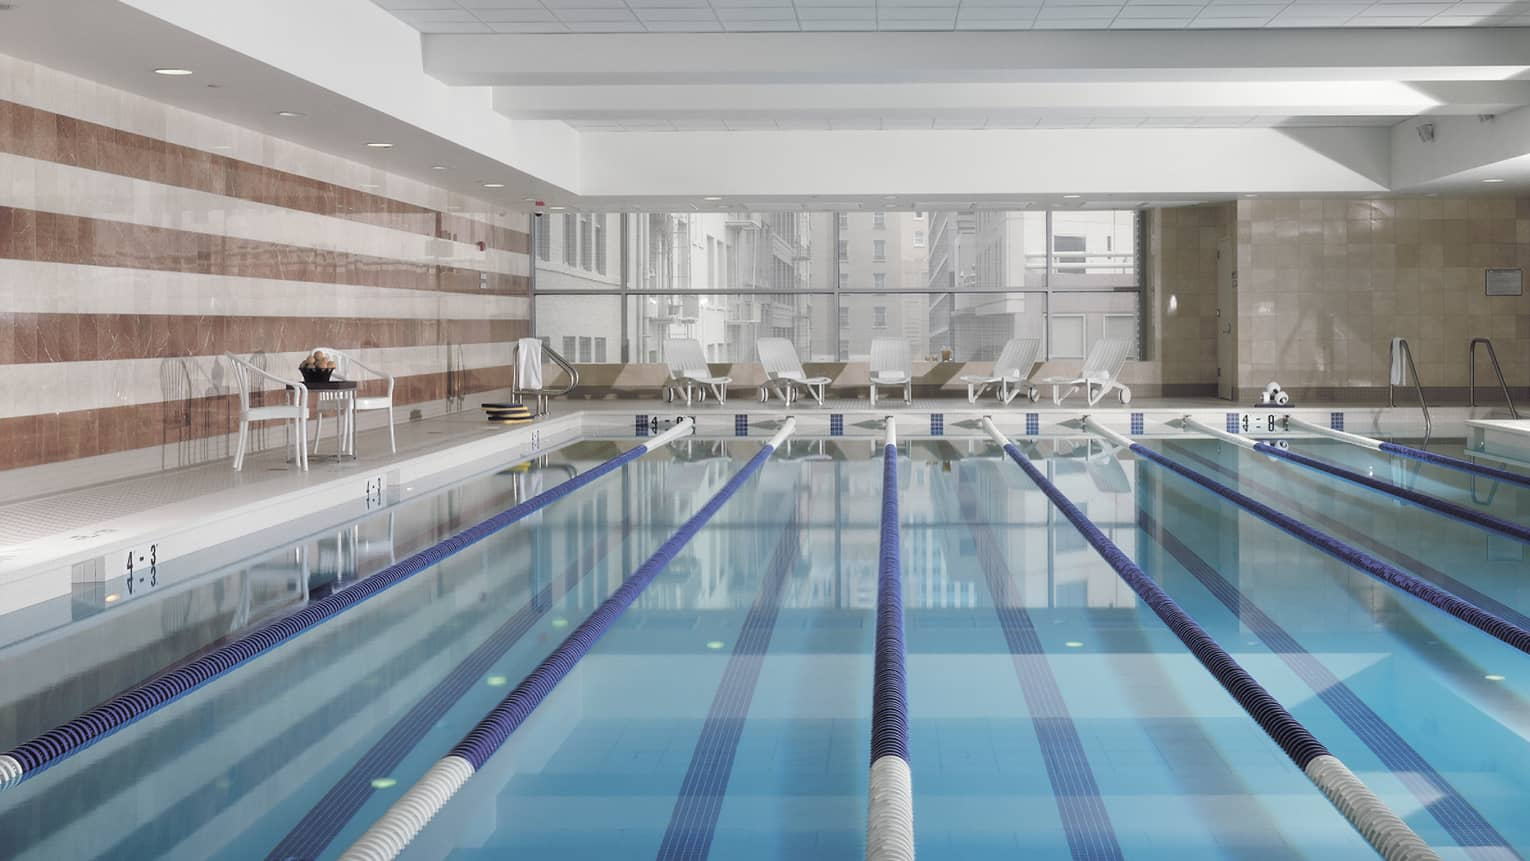 View across indoor swimming pool with divided lanes